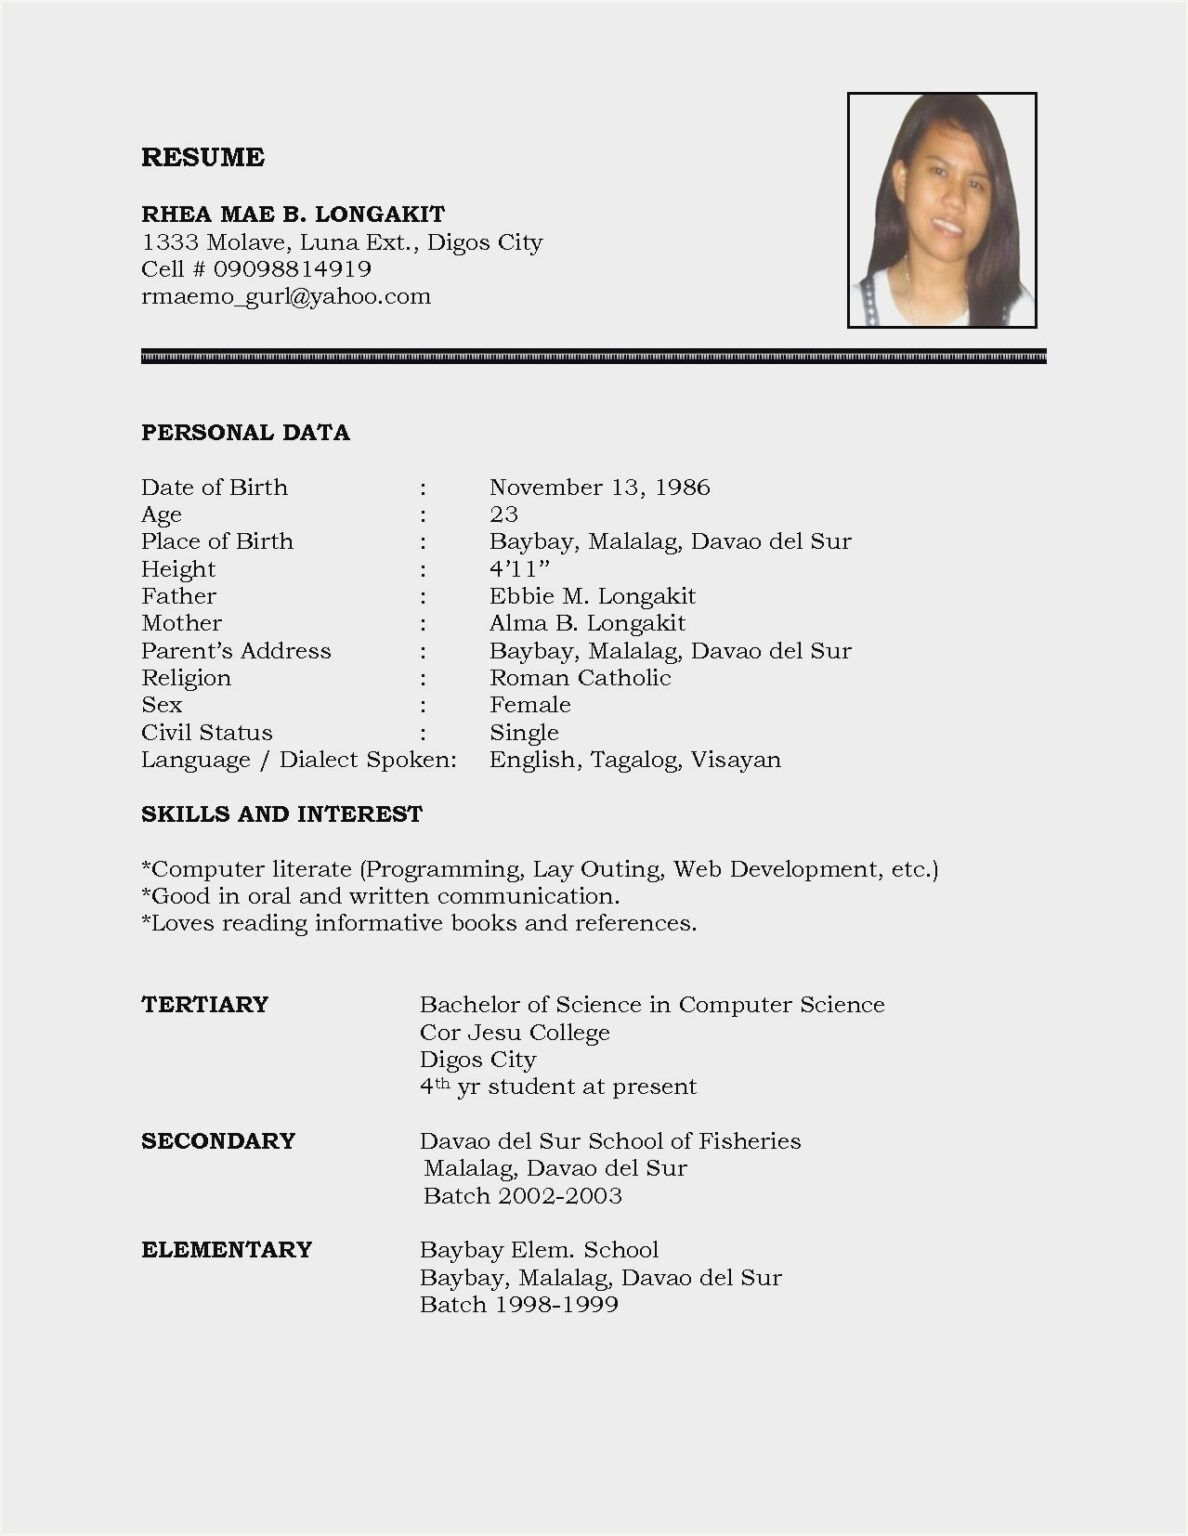 Sample Resume Format Download In Ms Word Resume Resume Inside Simple Resume Template Microsoft Wo Job Resume Format Simple Resume Format Best Resume Format